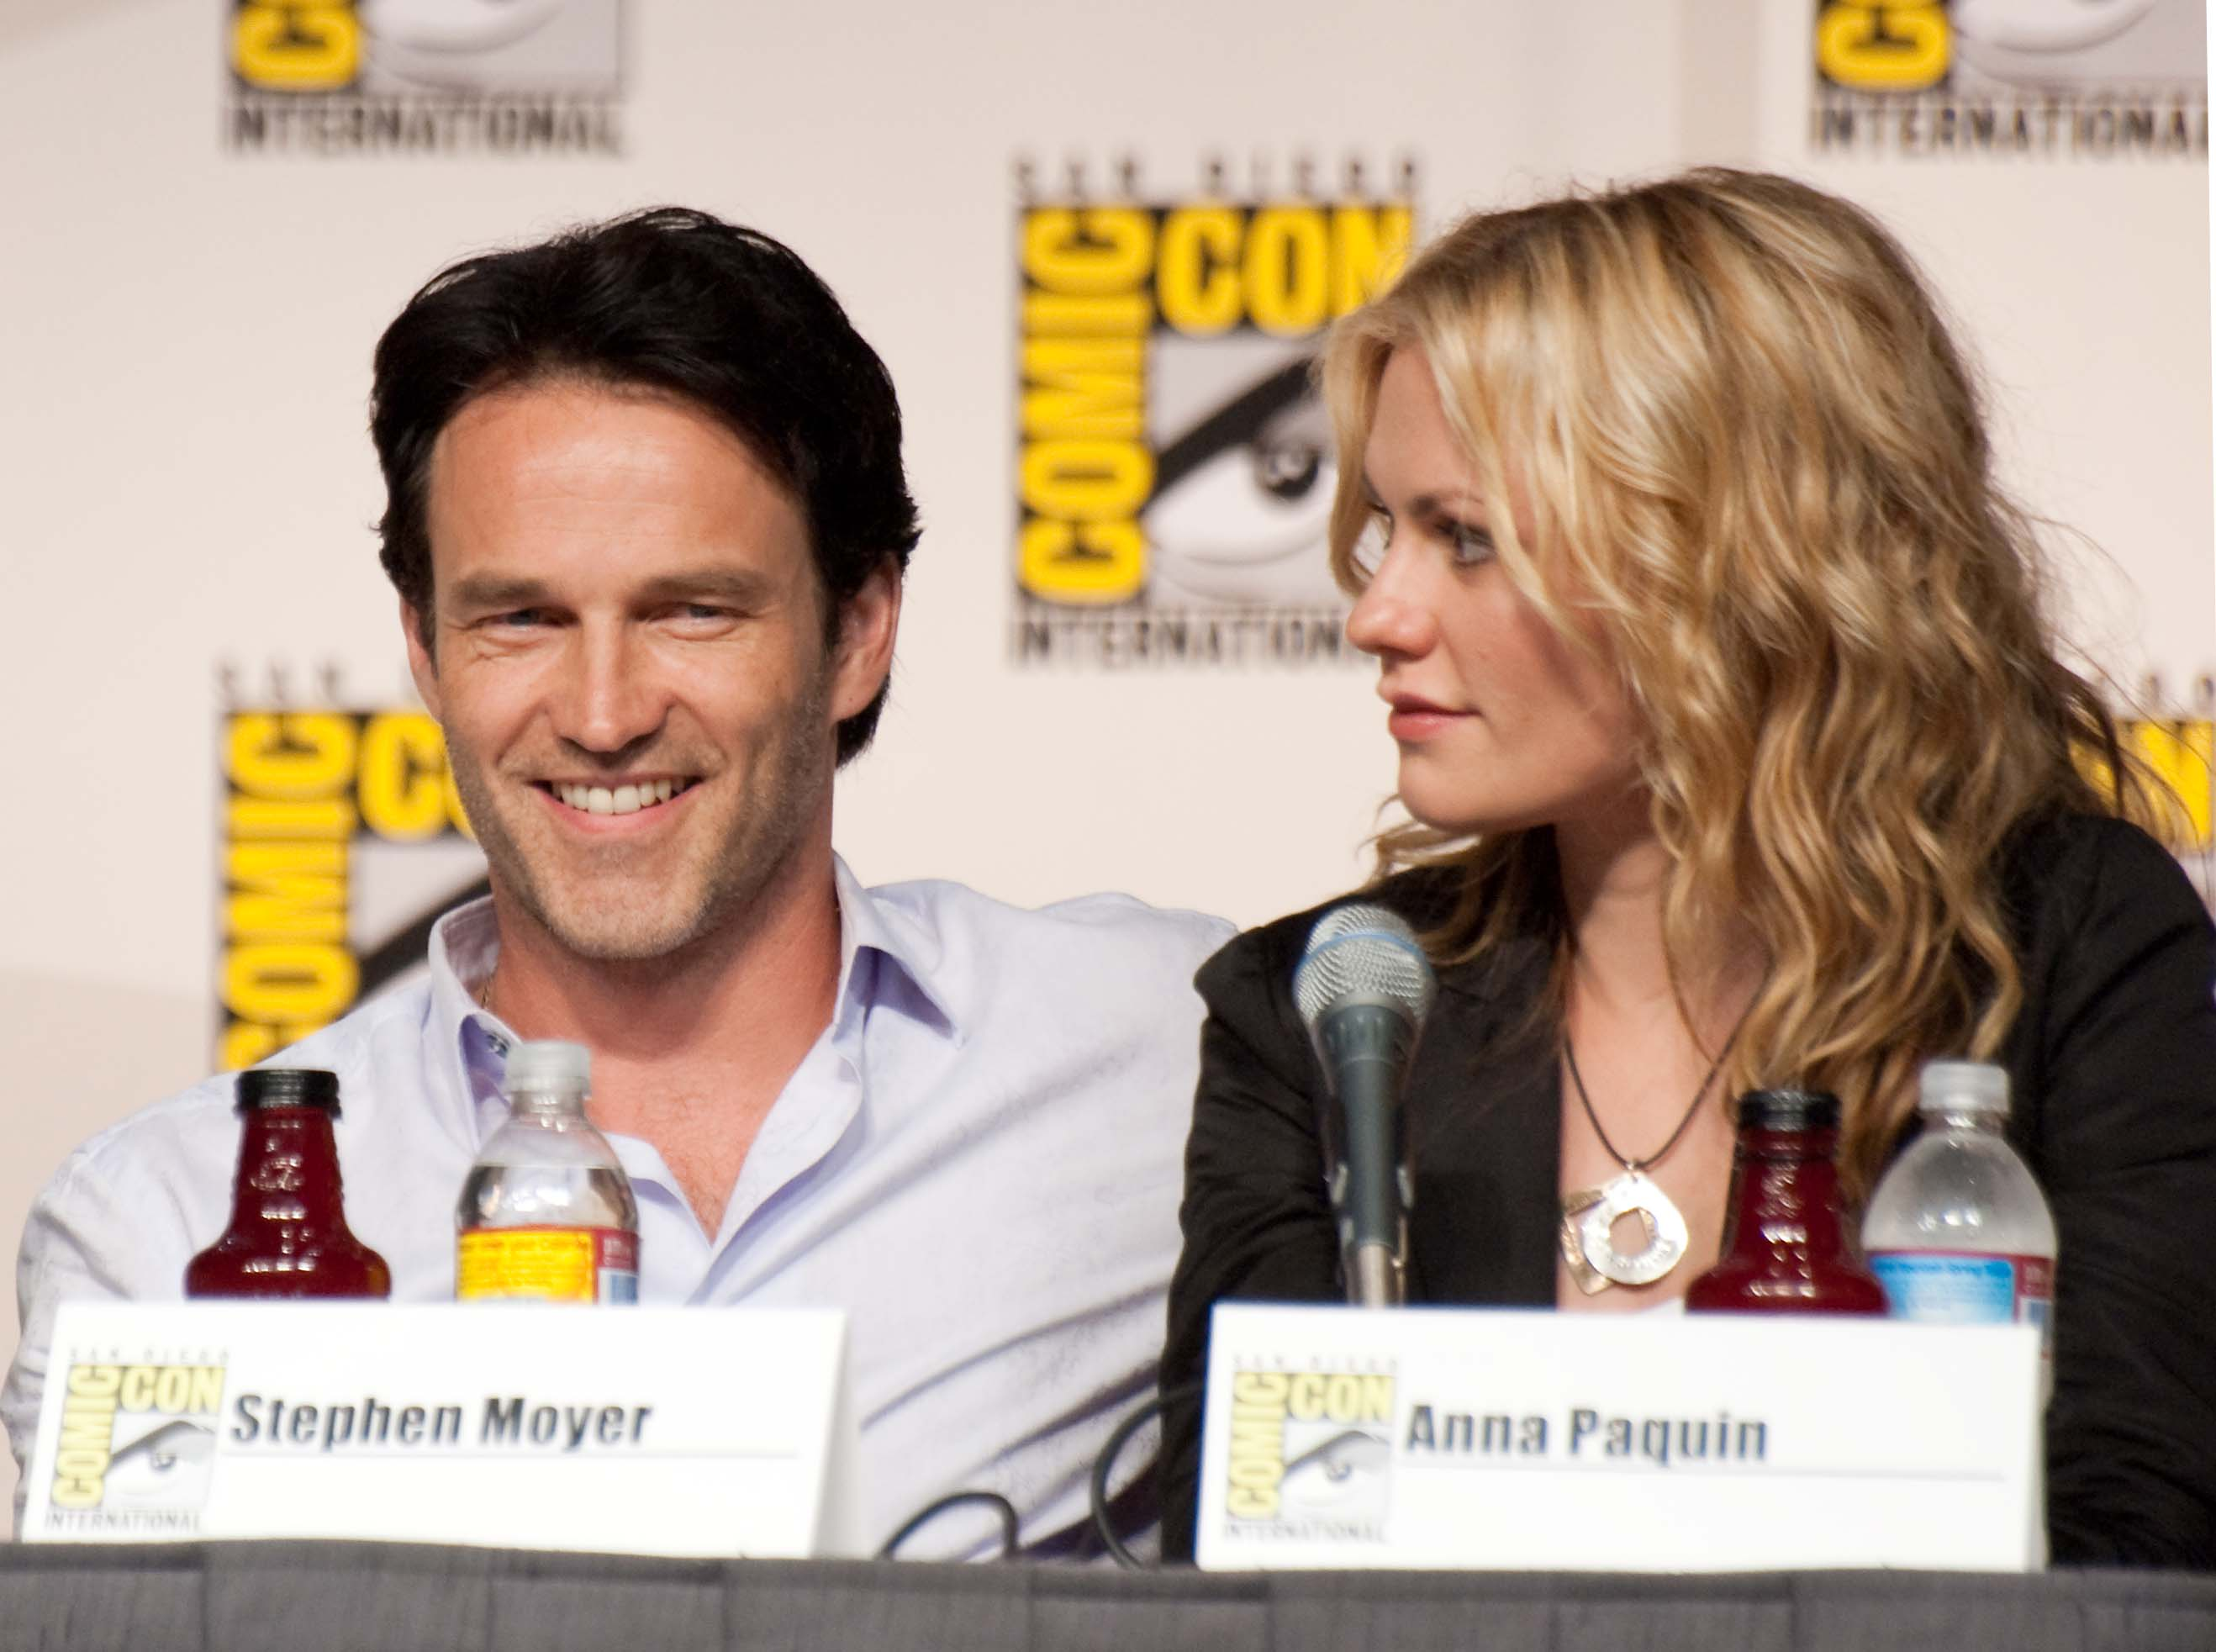 Stephen moyer and anna paquin dating in real life